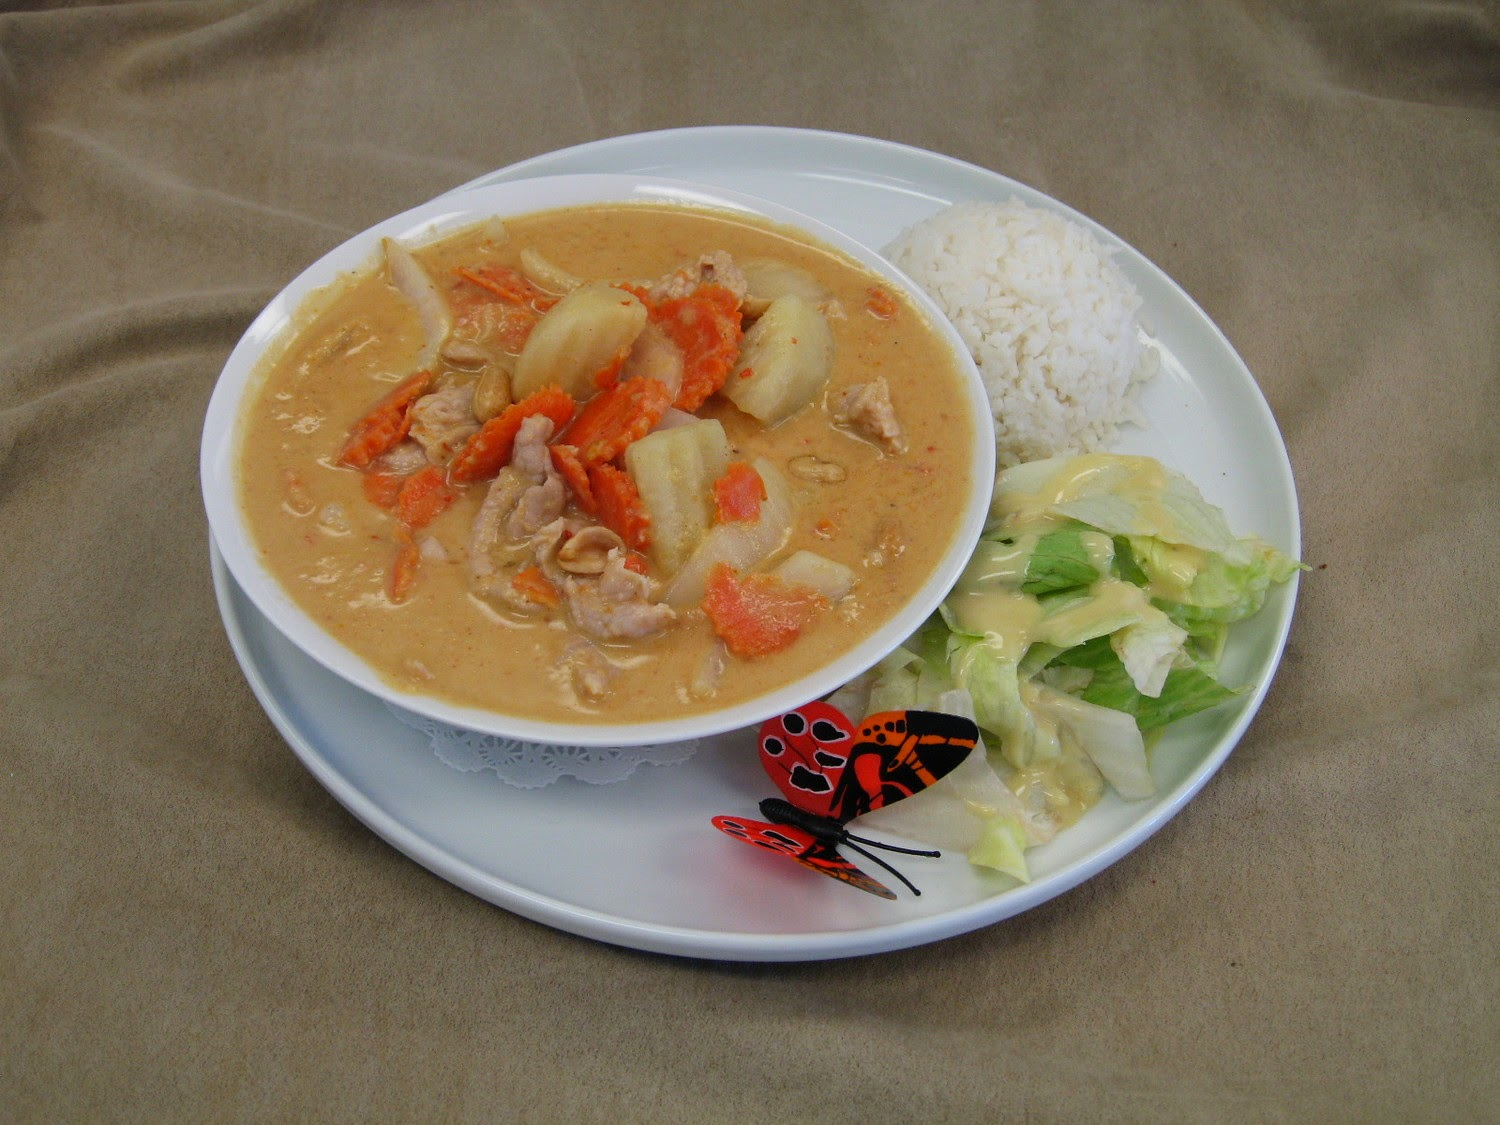 Massaman Curry dish from 123 Thai in Oak Harbor, Washington